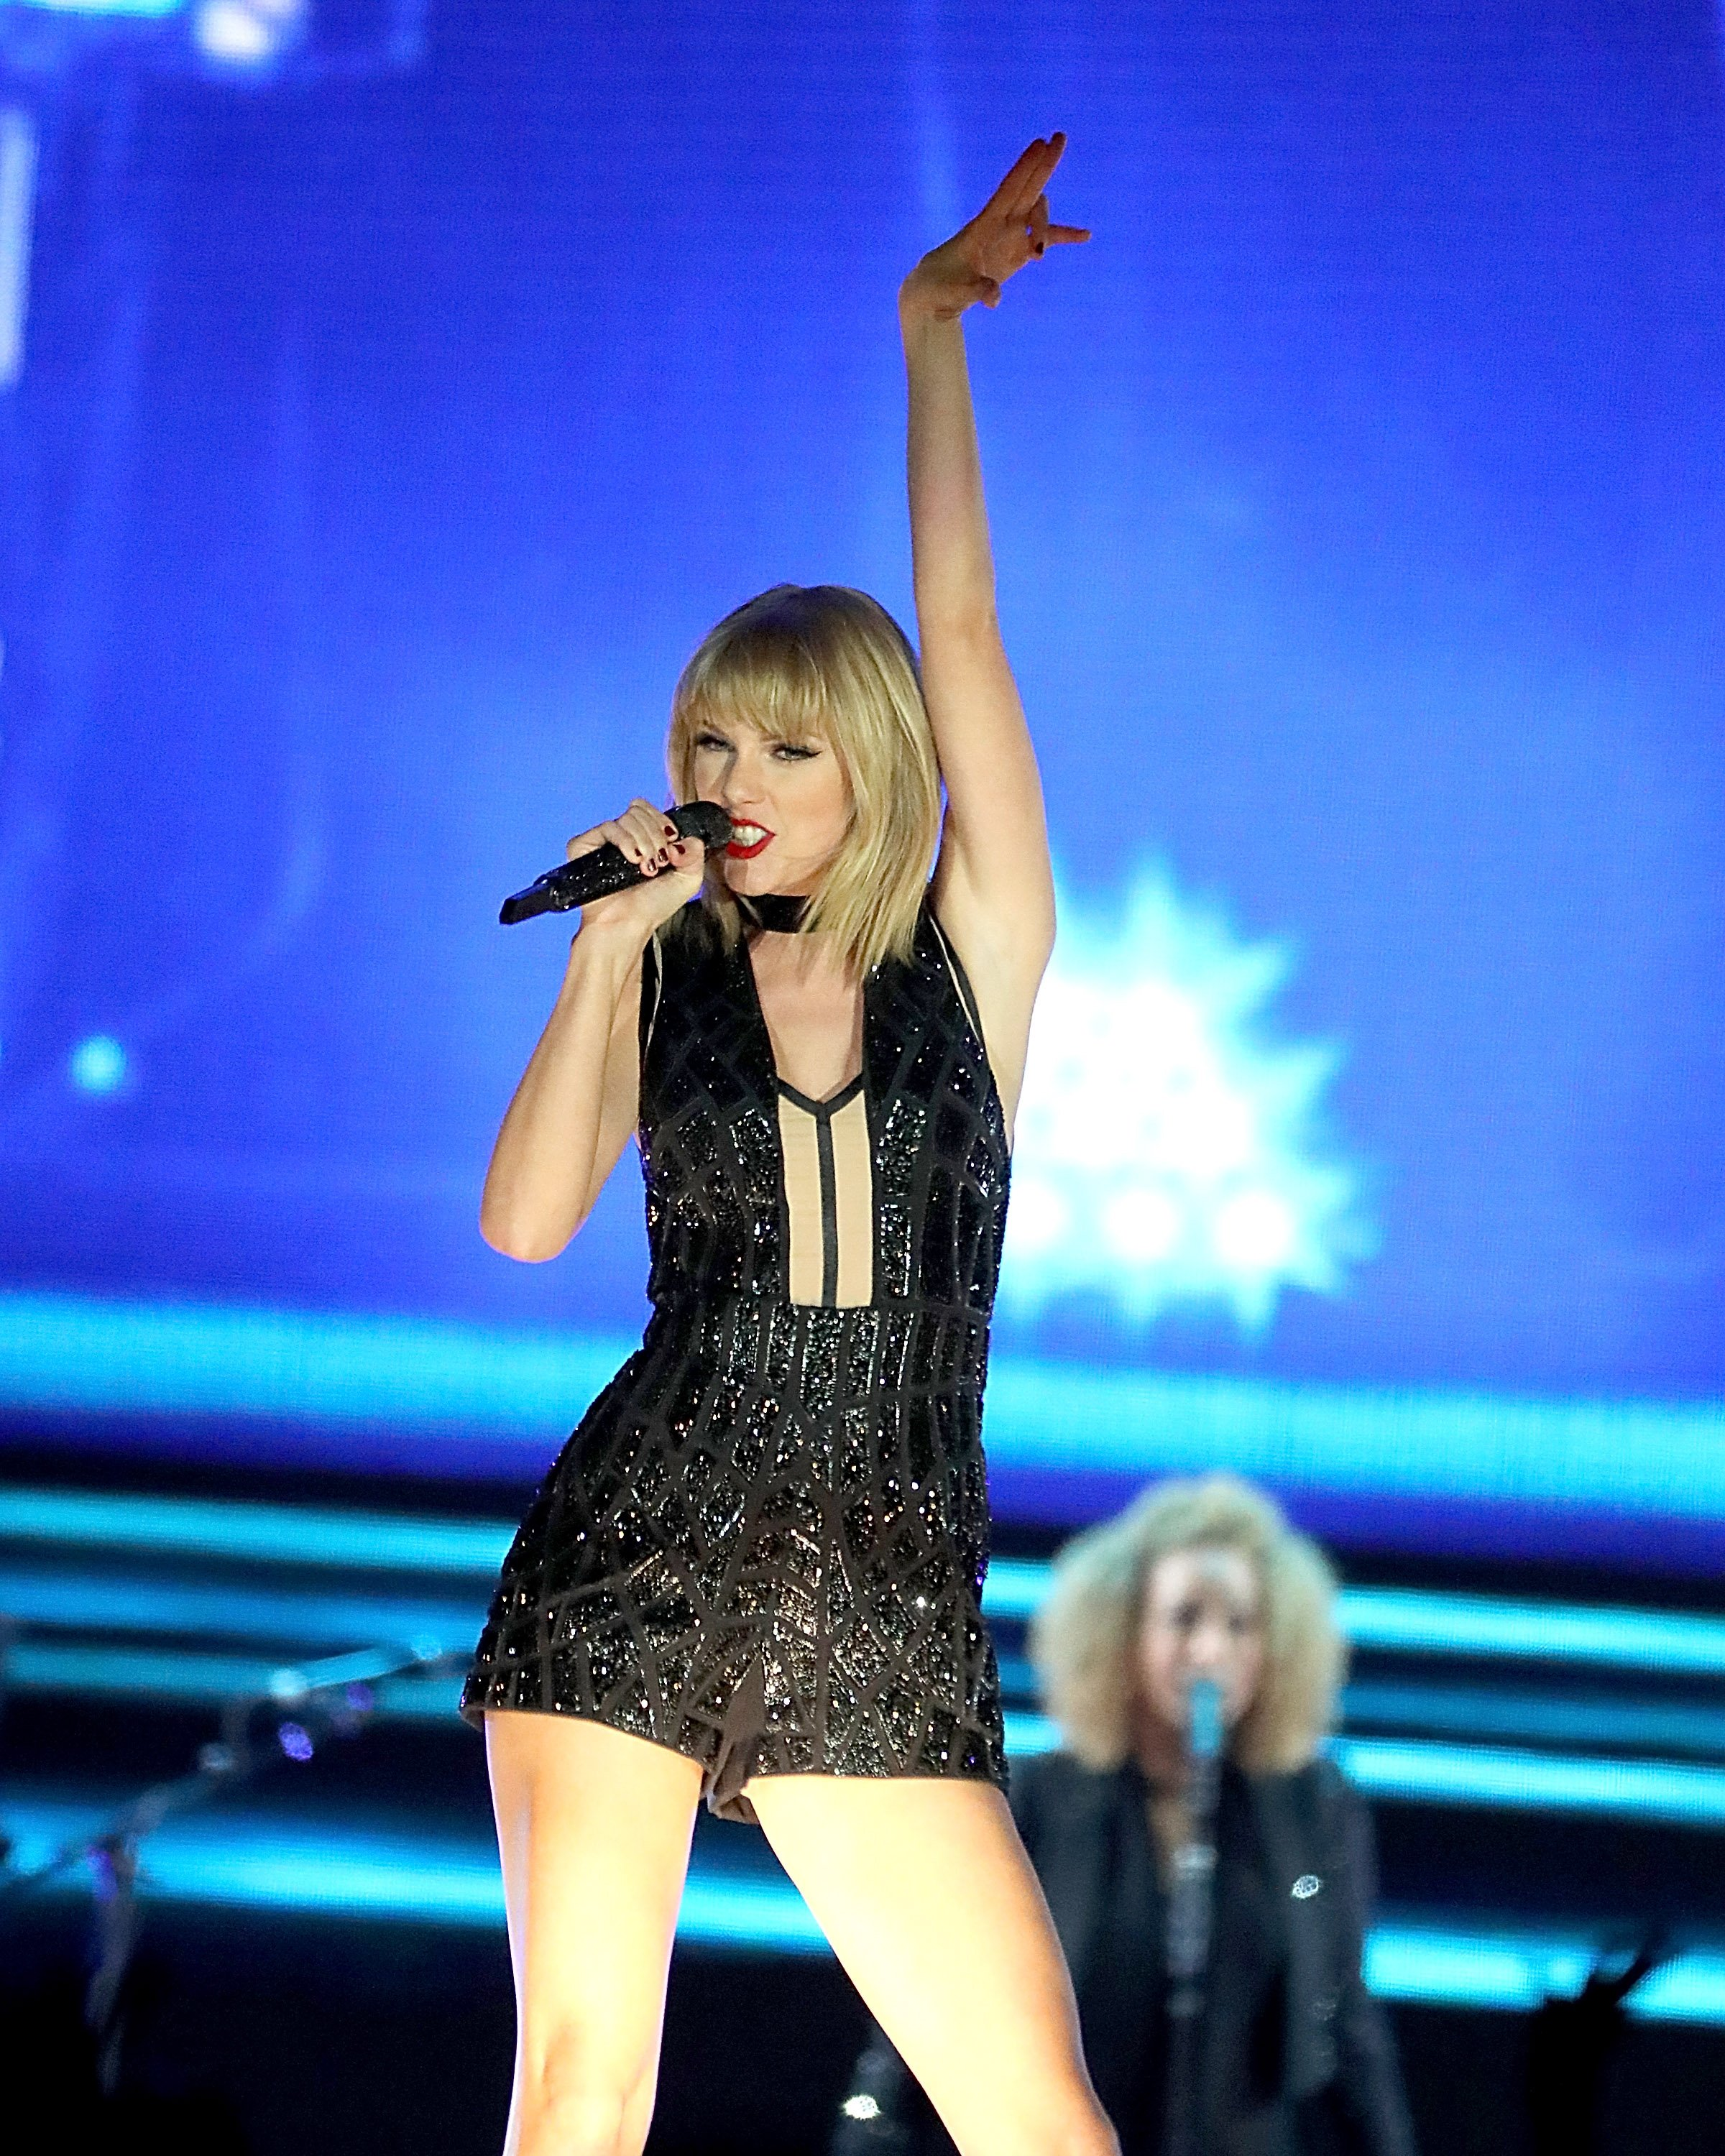 Taylor Swift performs for Formula 1 on October 22, 2016 in Austin